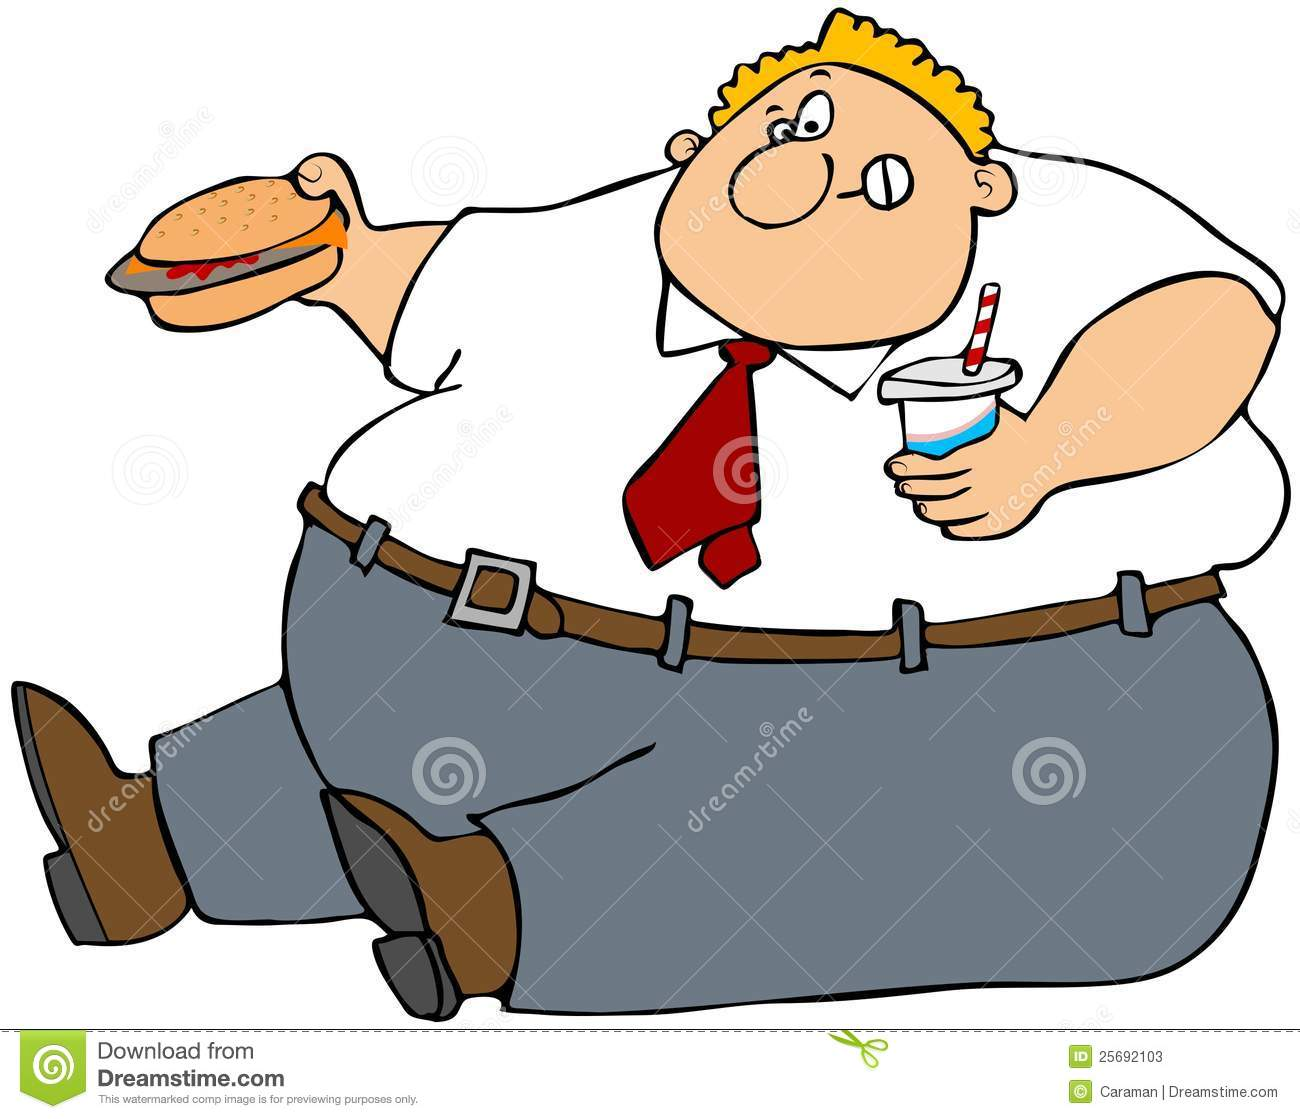 McDonald's clipart unhealthy diet Students group people Human of